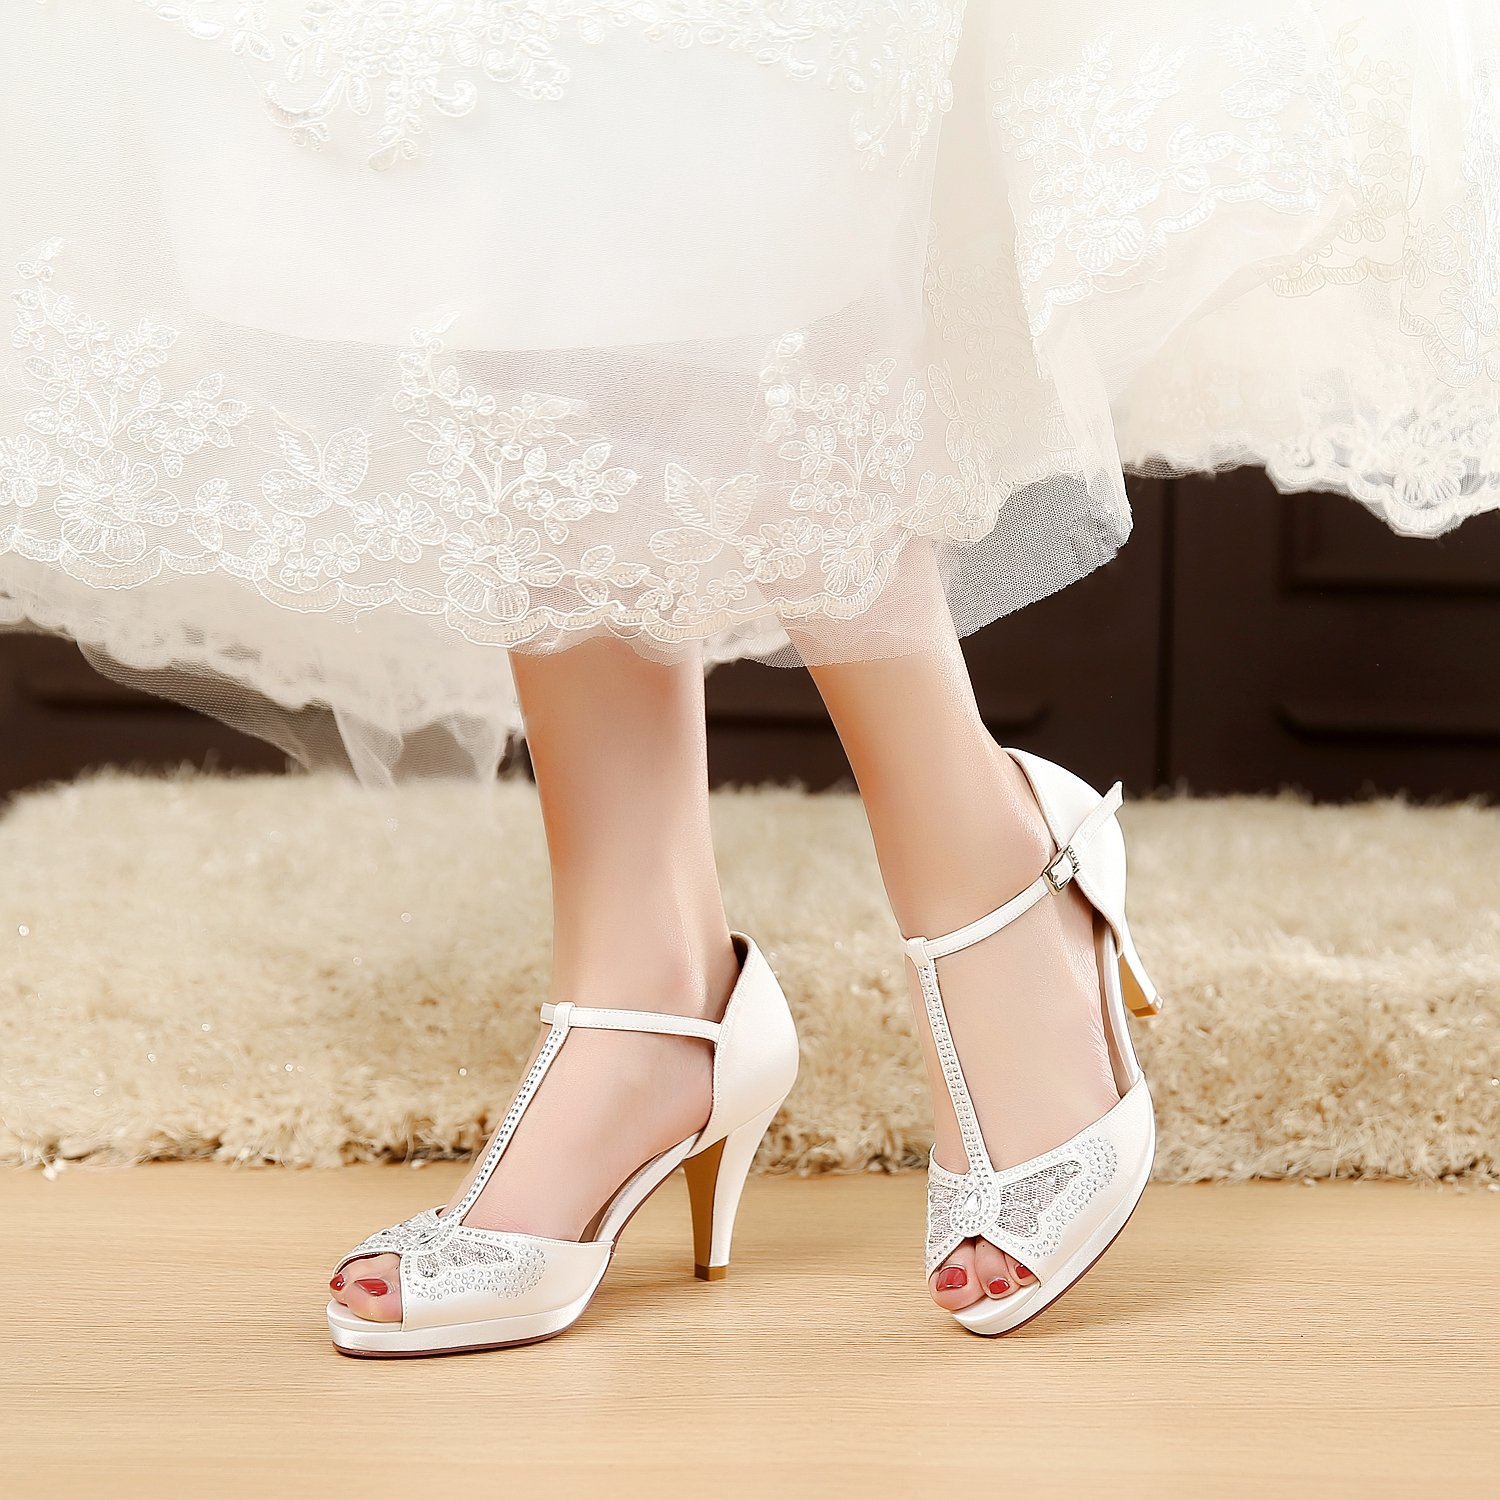 LUXVEER Wedding Sandals Heels for Women ,Silver Rhinestone and Lace Butterfly - Heels 3.5 inch-HK-0192C-Ivory-EU40 Wedding Shoes by LUXVEER (Image #2)